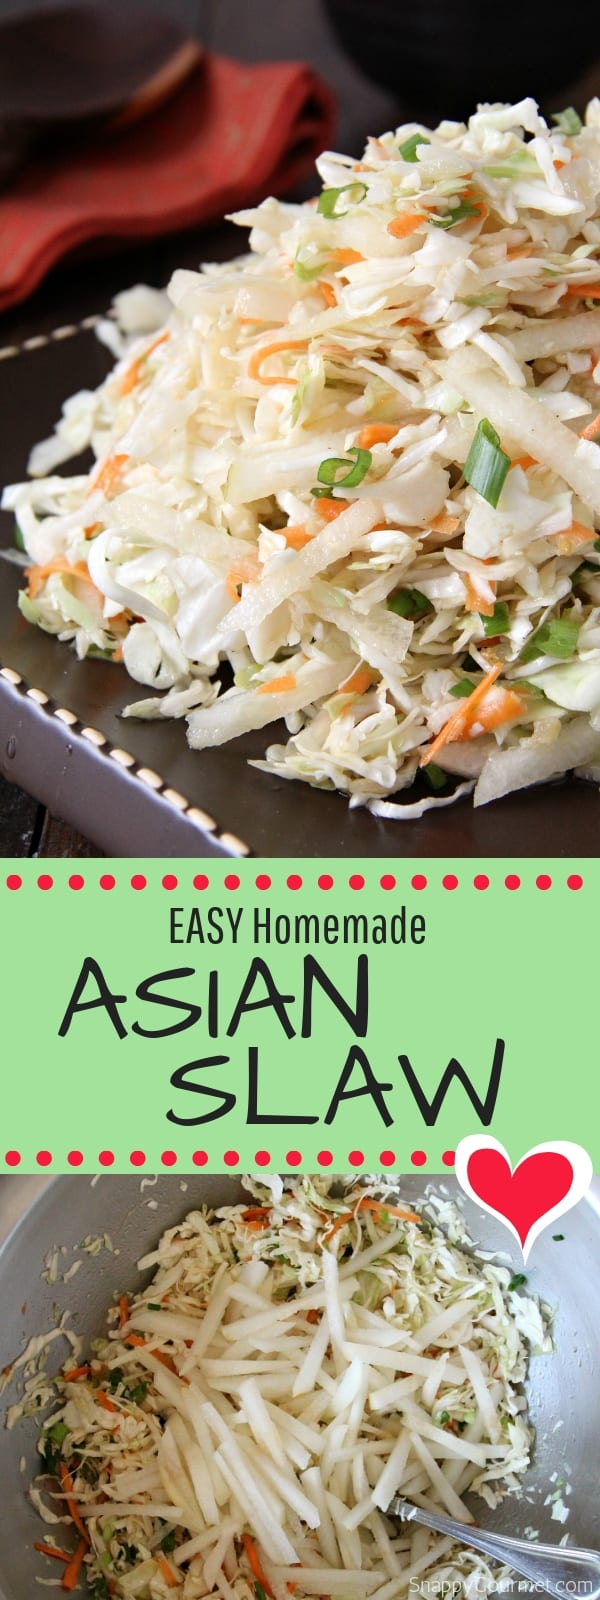 Asian slaw collage